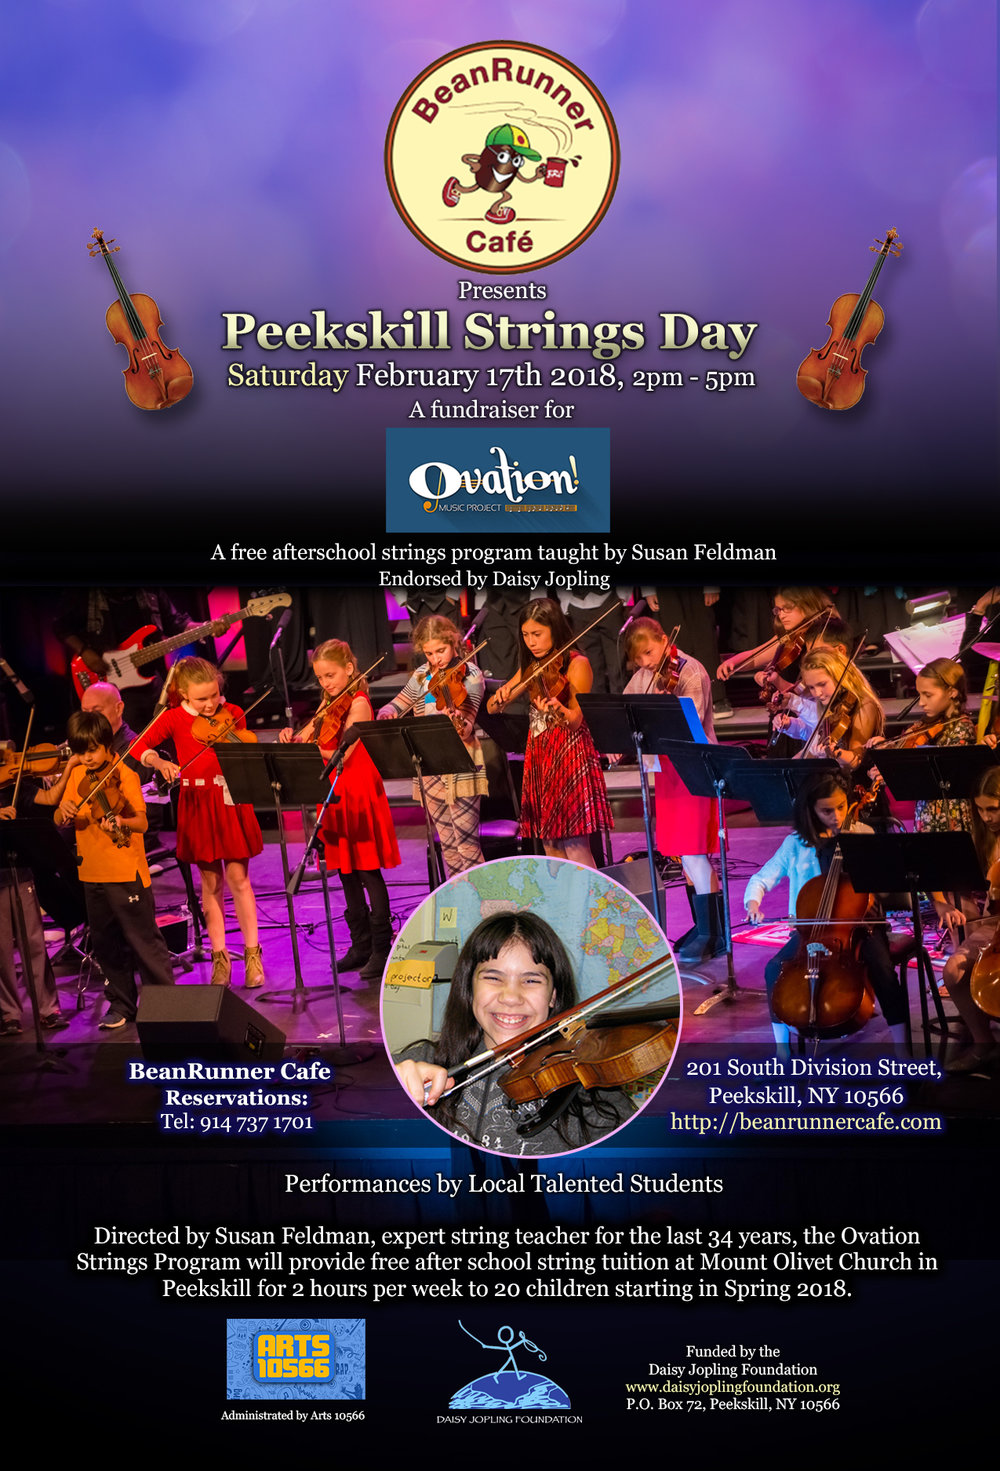 Join us at the wonderful BeanRunner cafe in Peekskill, NY to celebrate and raise funds for our new free after school strings program!